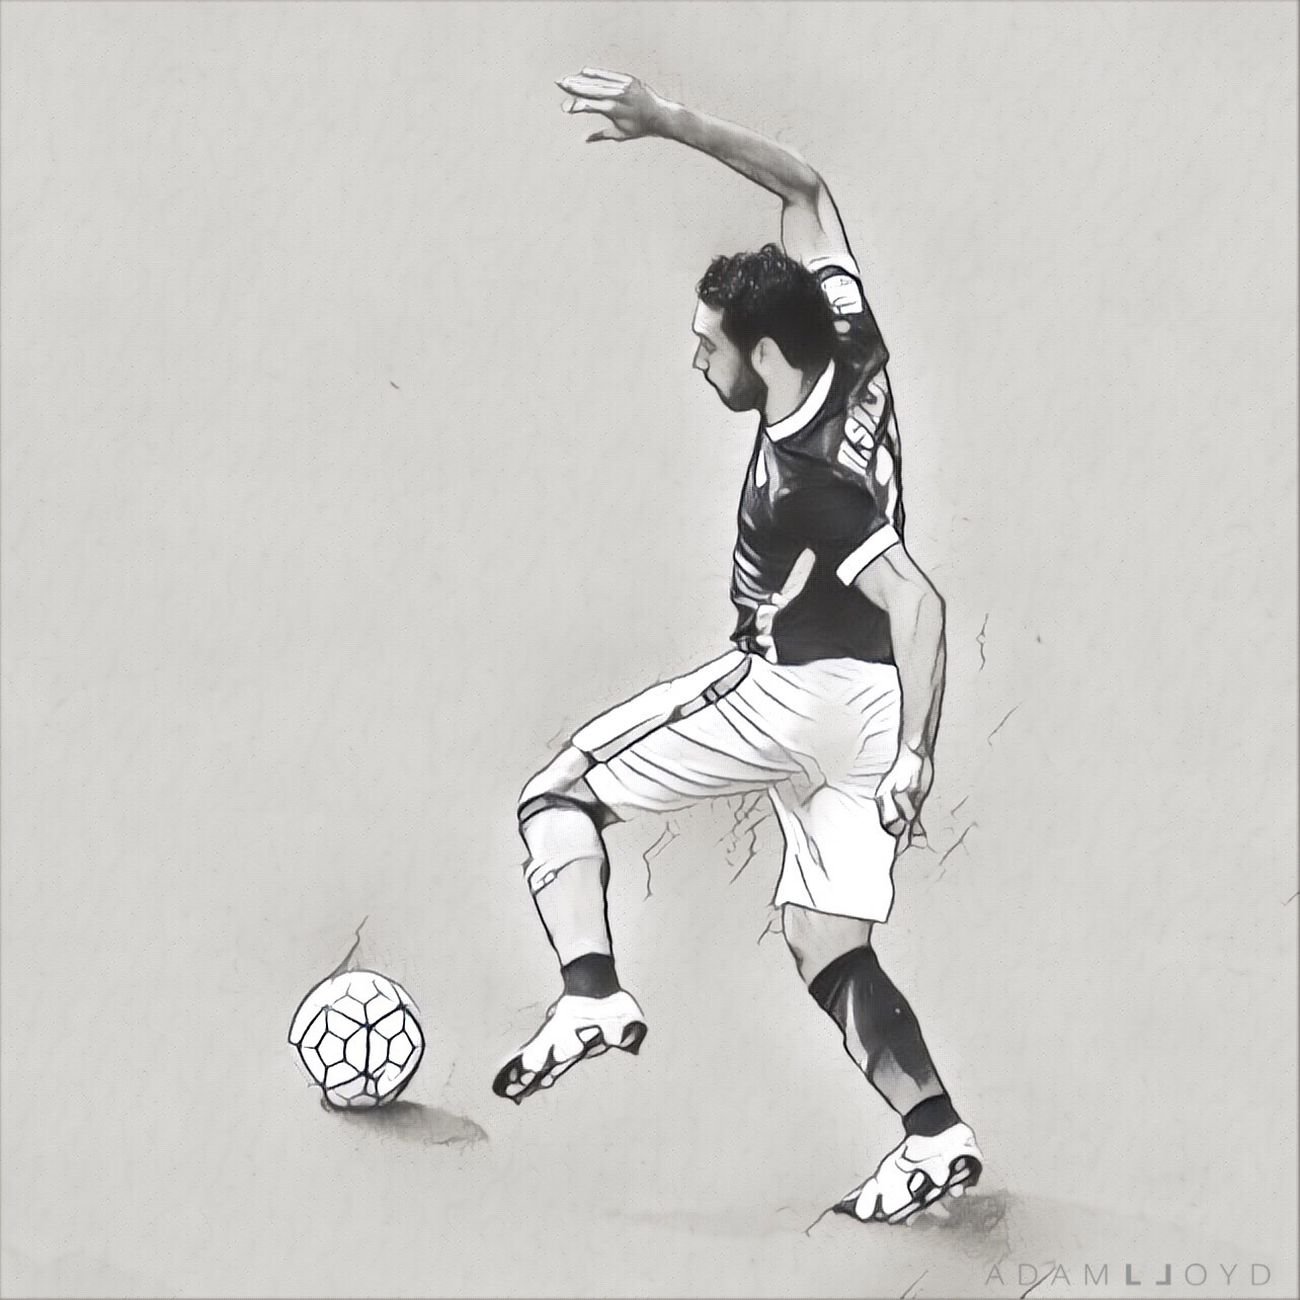 Salah Blackandwhite Digital Art As Roma Football Full Length One Person Real People Motion Outdoors Sports Uniform Day People Physical Education